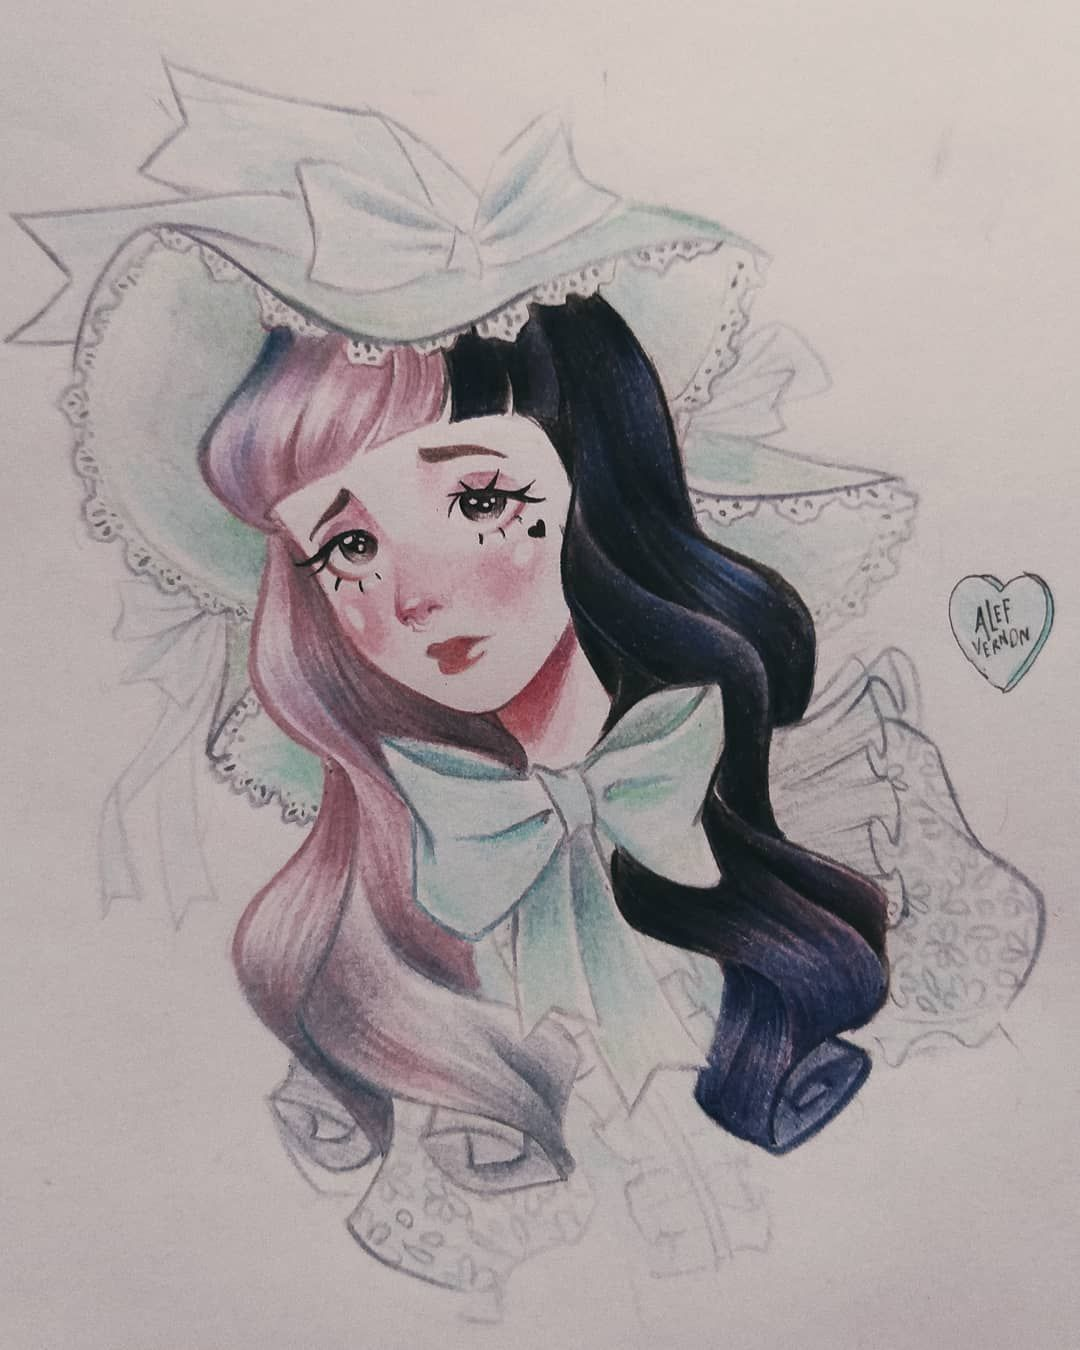 Alef Vernon On Instagram Melanie On Episode 3 Recess I Love Everything About The Ep 3 So I Decided Melanie Martinez Drawings Melanie Martinez Melanie